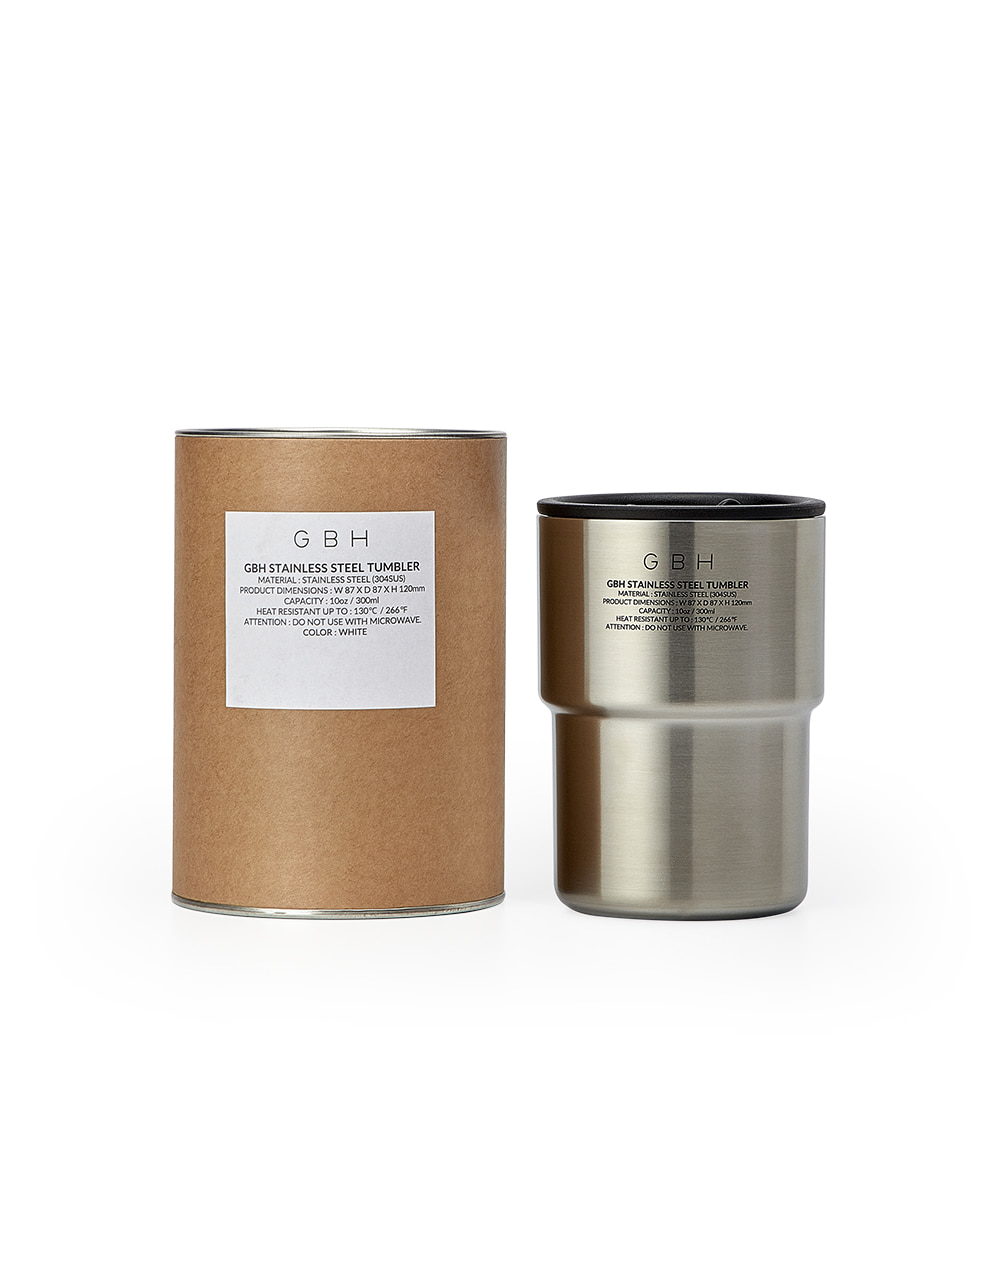 GBH HOME STAINLESS STEEL TUMBLER + TUMBLER POUCH